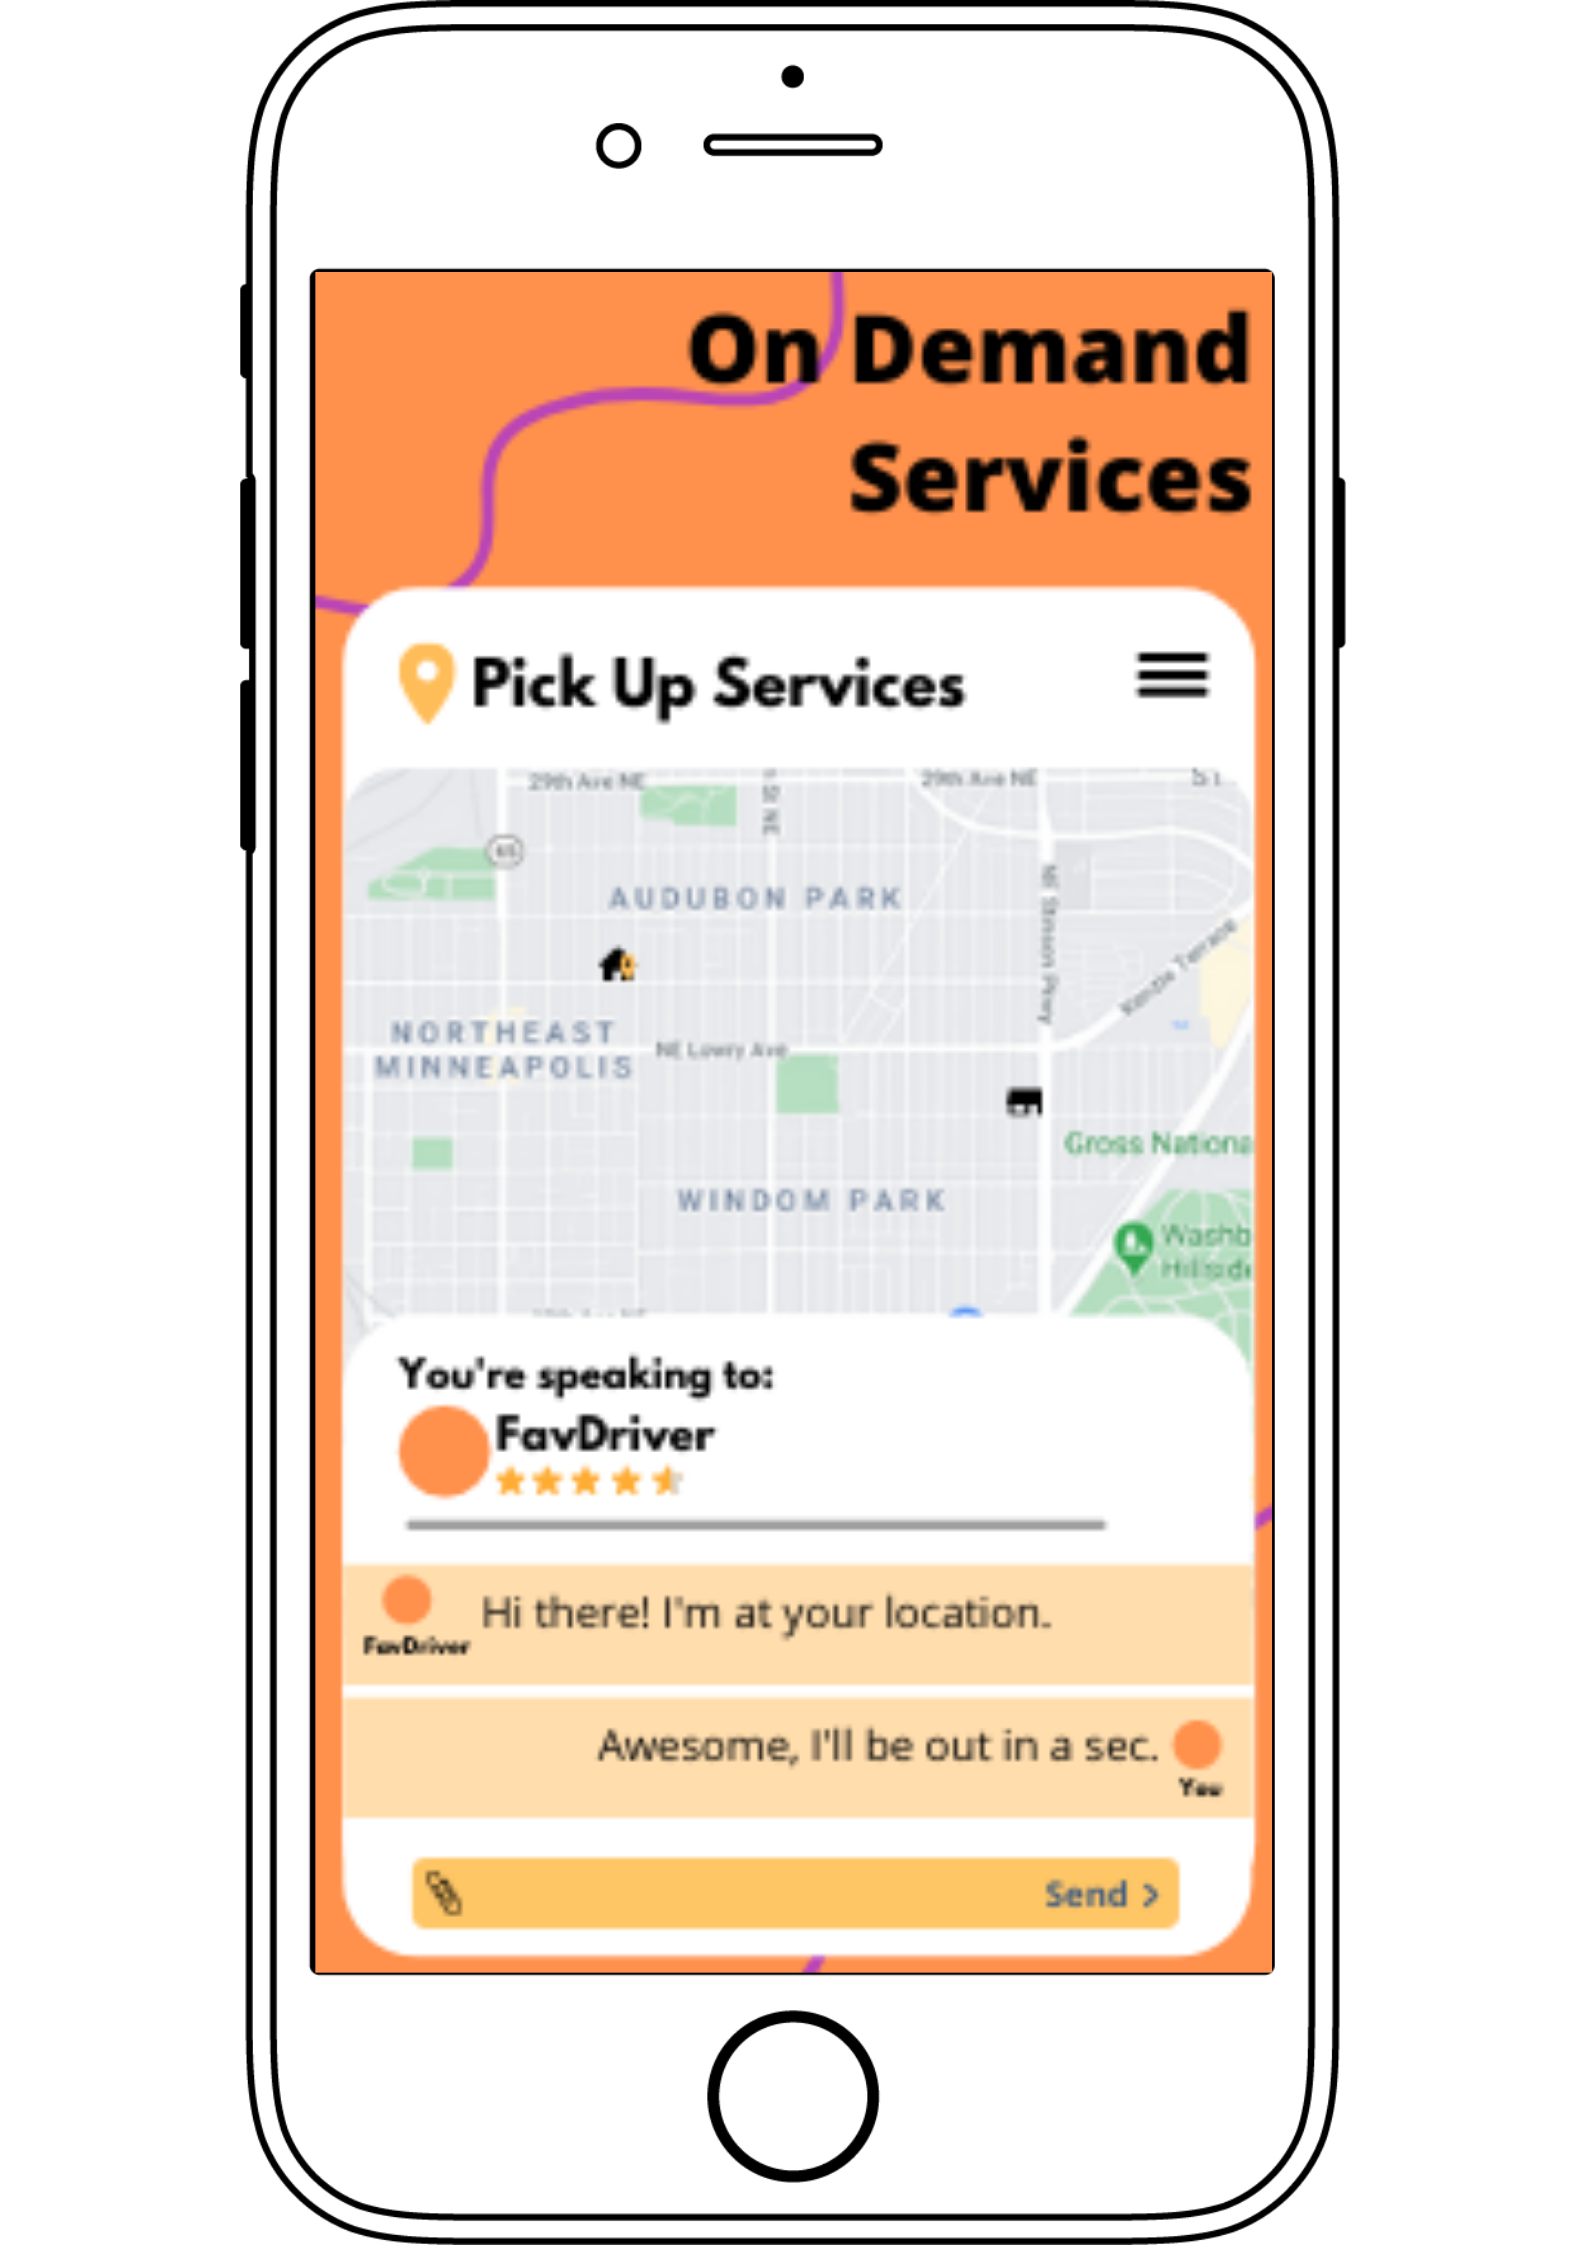 Image of passenger texting driver via in-app chat of an online cab service